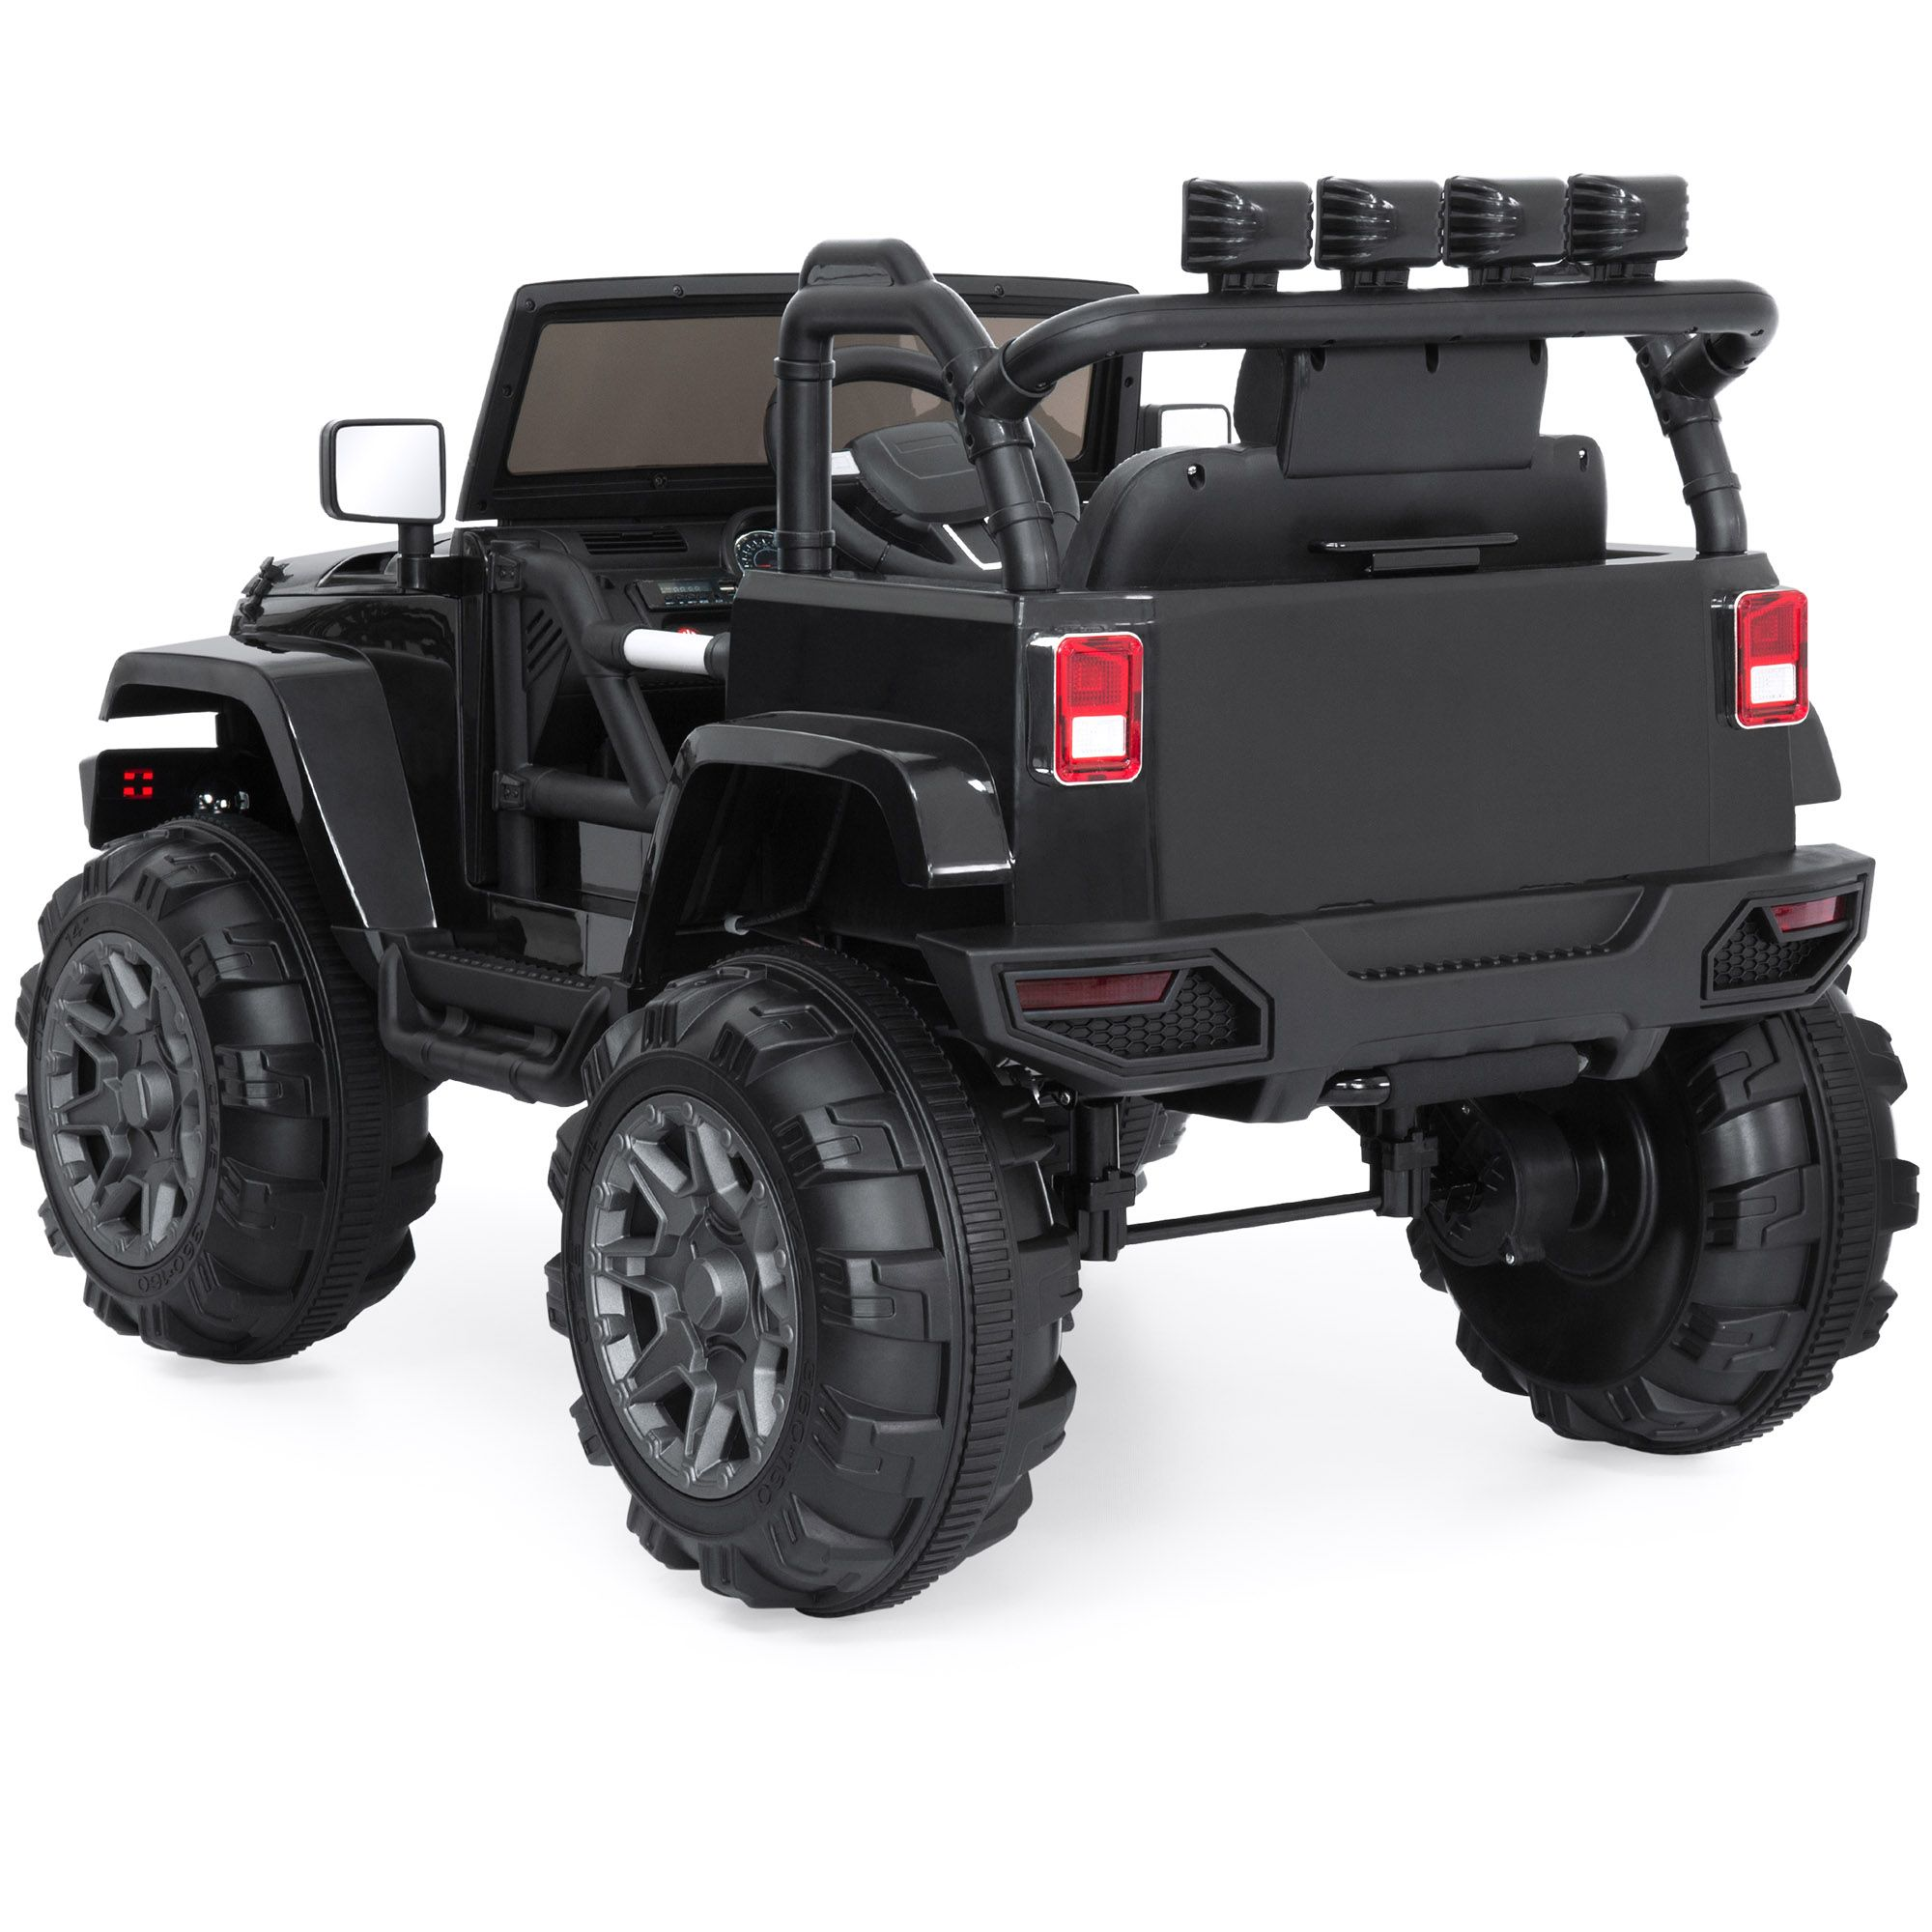 Best Choice Products 12v Kids Ride On Truck Car W Remote Control 3 Speeds Spring Suspension Led Lights Aux Black Walmart Com Cars Trucks Kids Ride On Ride On Toys